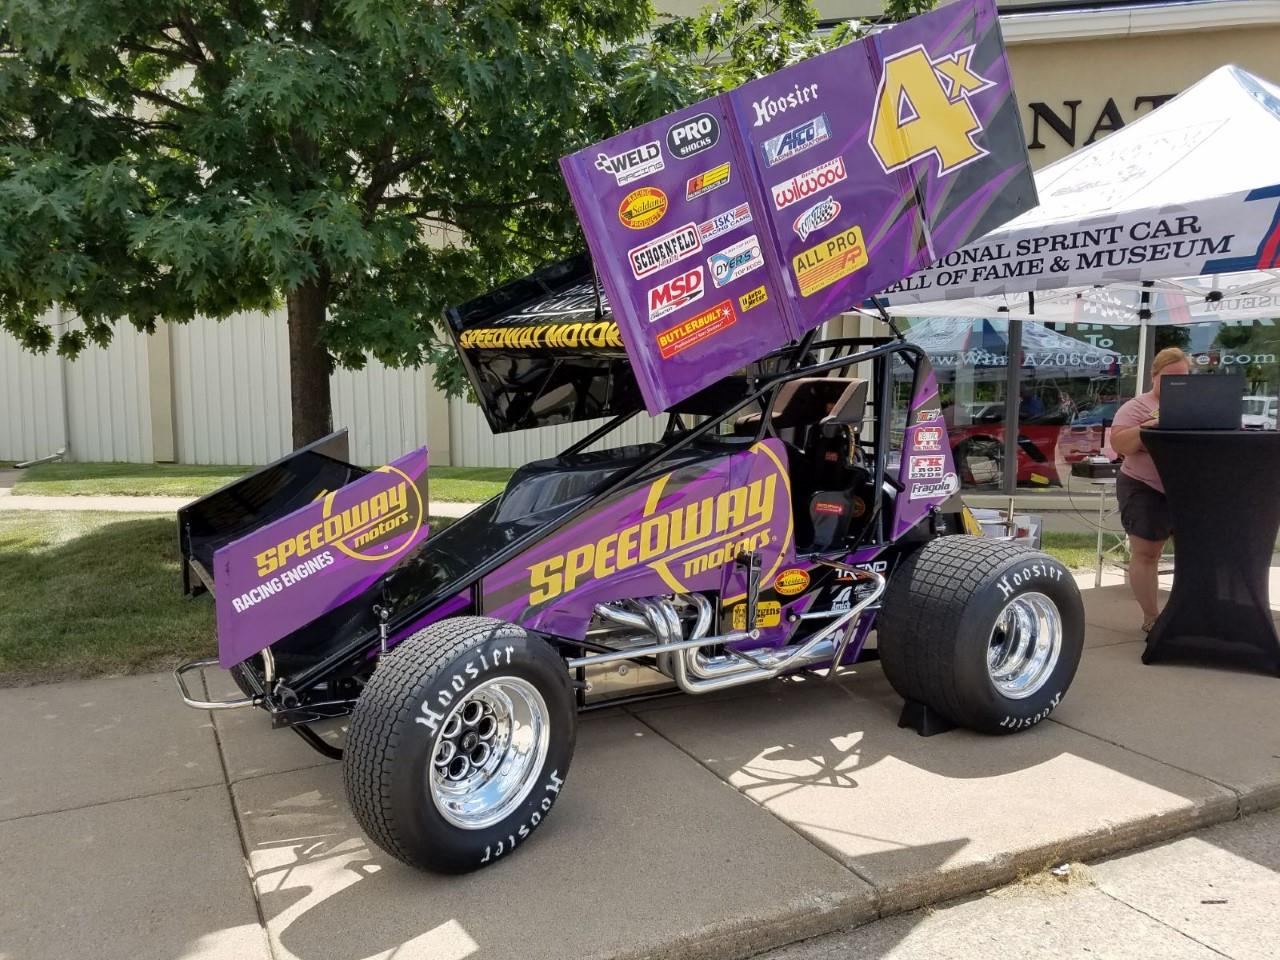 National Sprint Car Hall of Fame & Museum Raffle Car Makes Last Midwest Appearances This Weekend!